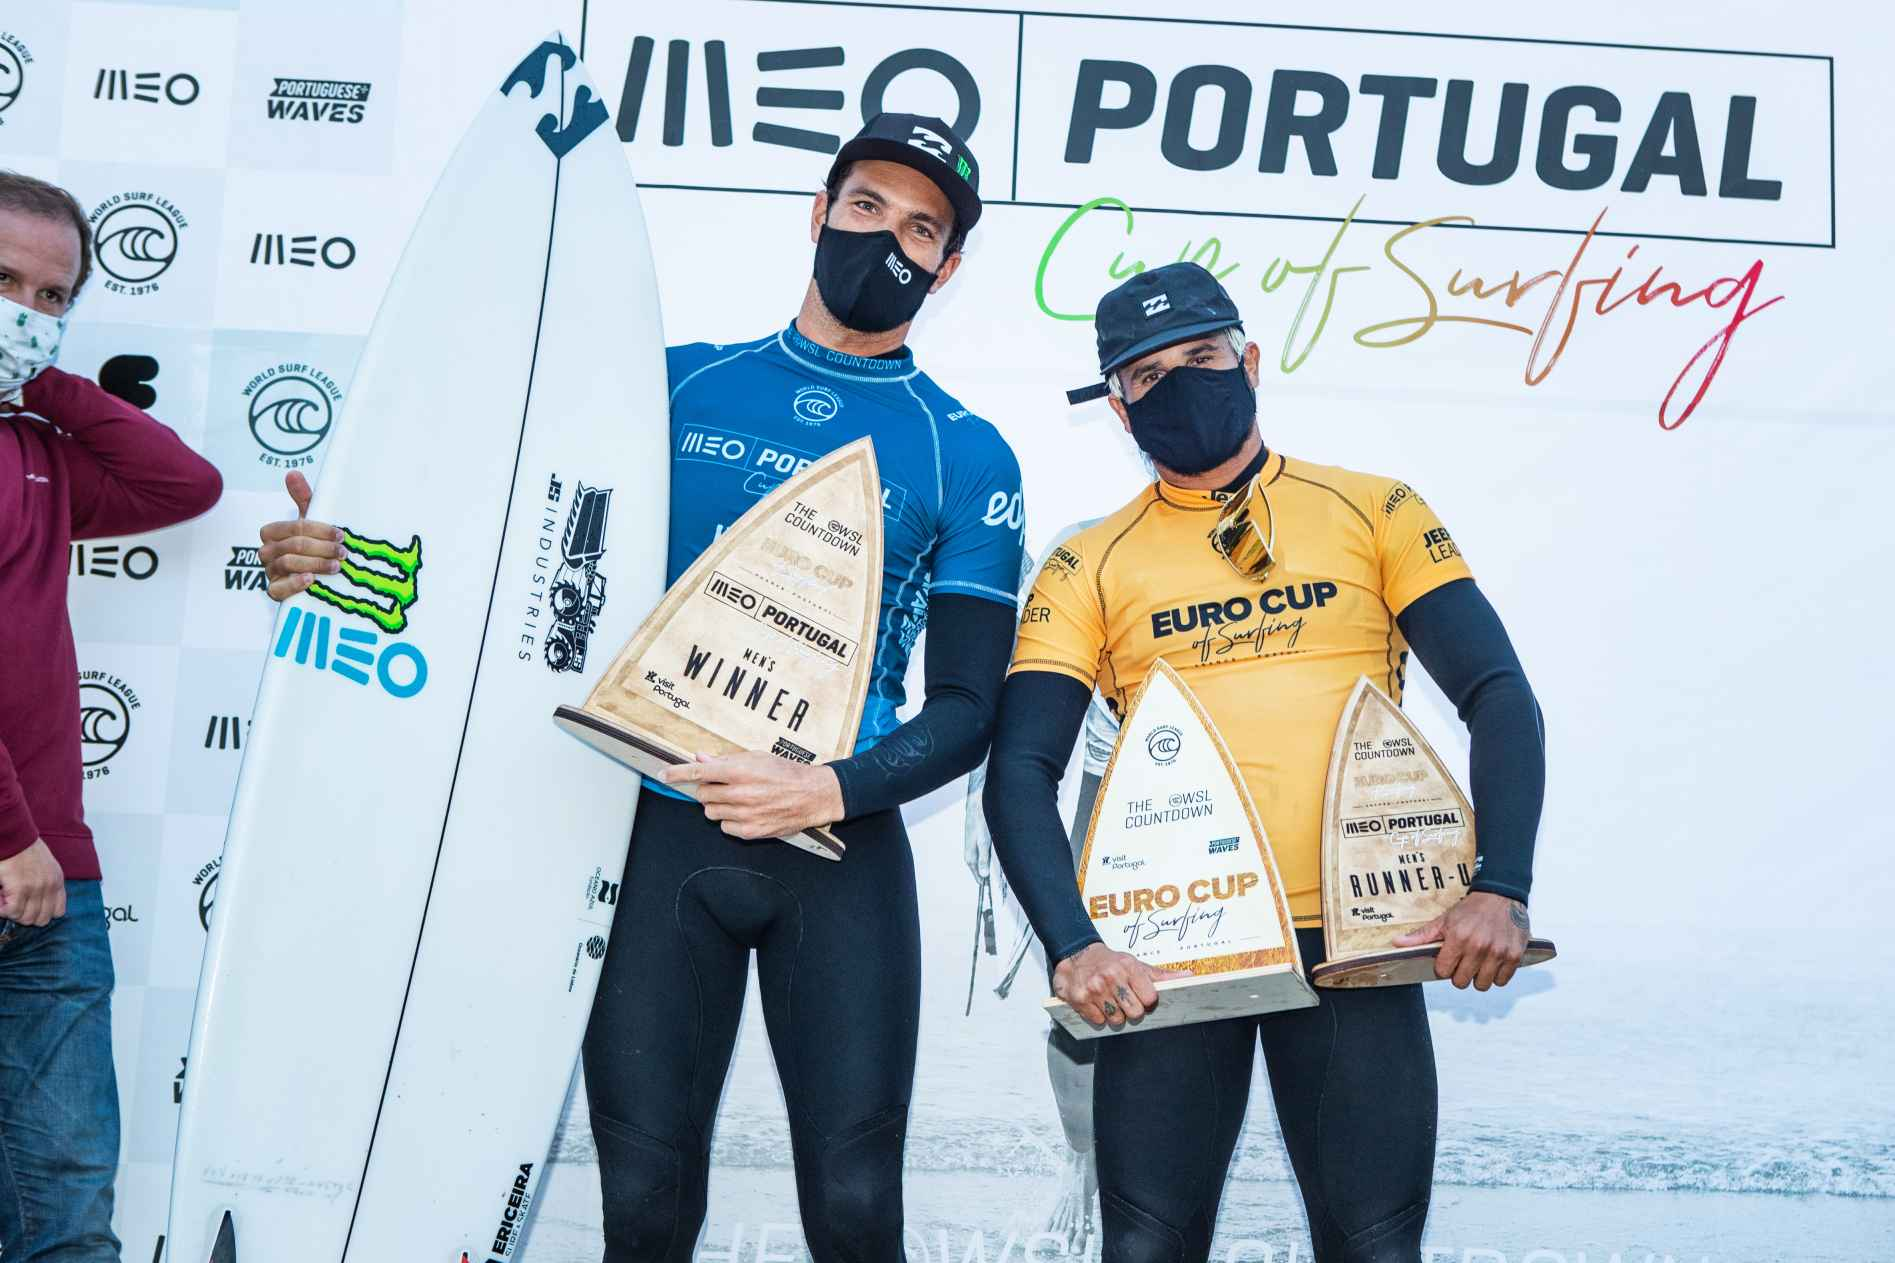 portugal wsl meo surf30 morais ferreira7320MeoPortugal20Poullenot